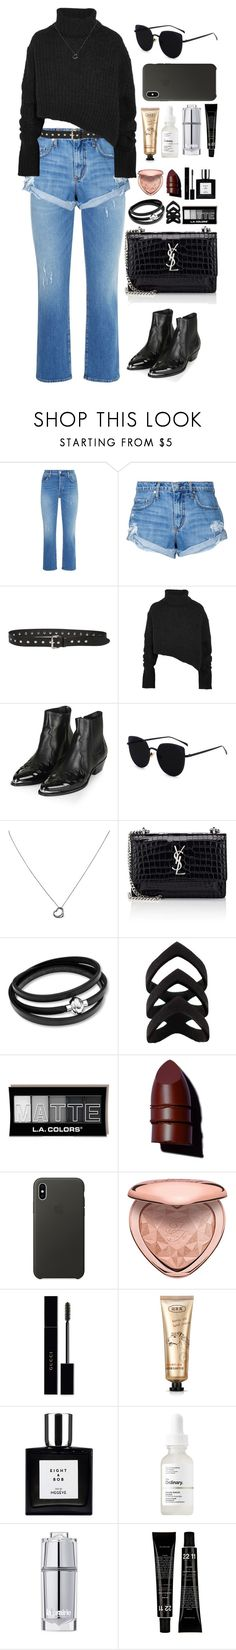 """""""Cool Like the Weather"""" by krys-imvu ❤ liked on Polyvore featuring 7 For All Mankind, Nobody Denim, P.A.R.O.S.H., Ann Demeulemeester, Topshop, Tiffany & Co., Yves Saint Laurent, Anastasia Beverly Hills, Apple and Too Faced Cosmetics"""